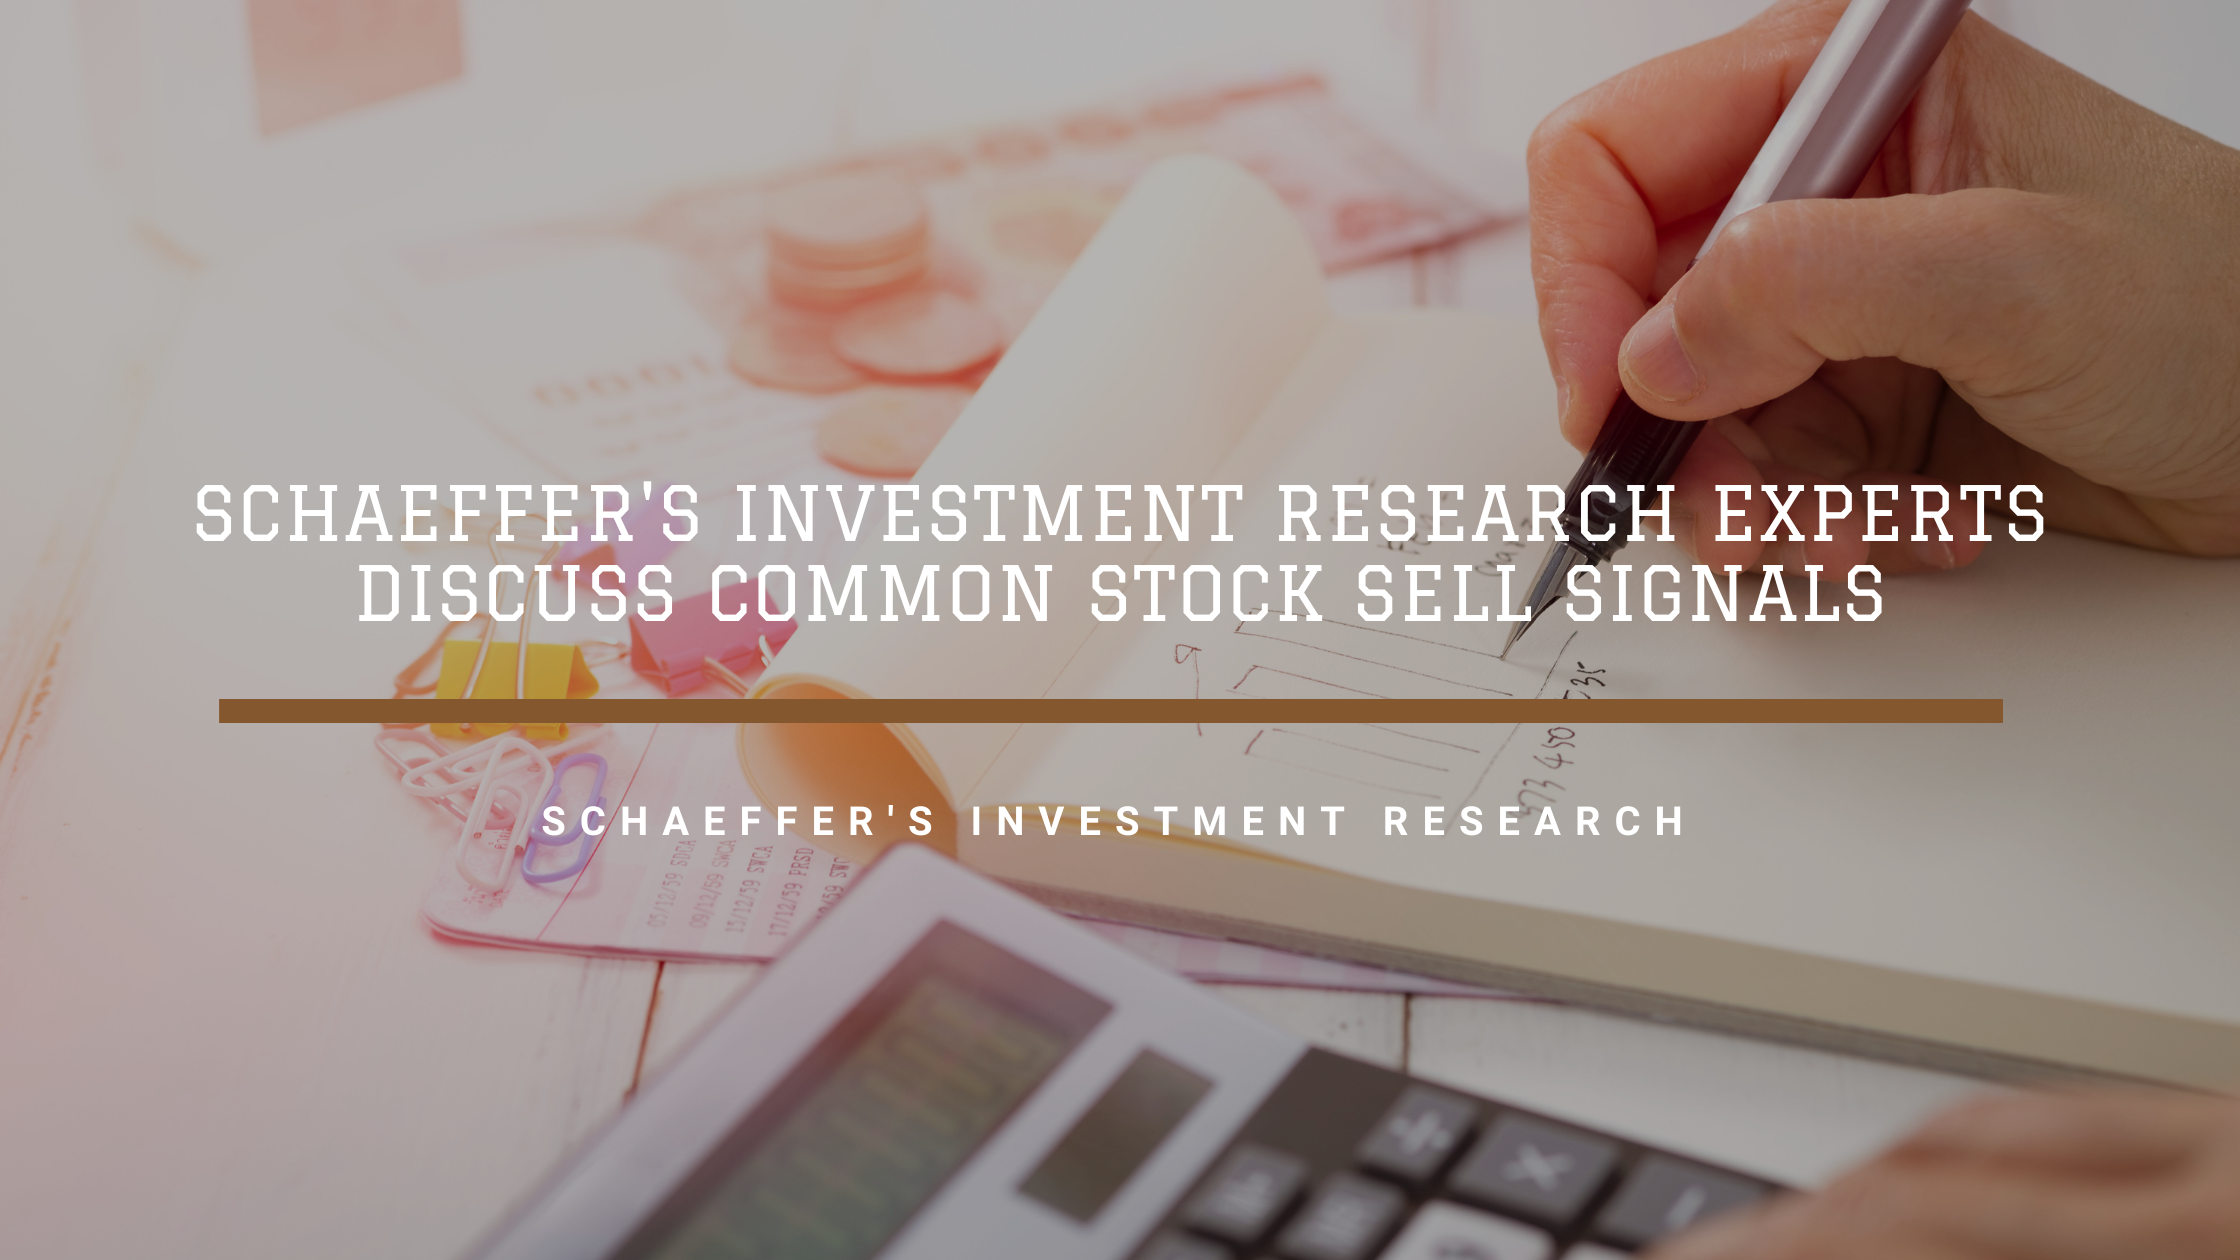 Schaeffer's Investment Research Experts Discuss Common Stock Sell Signals